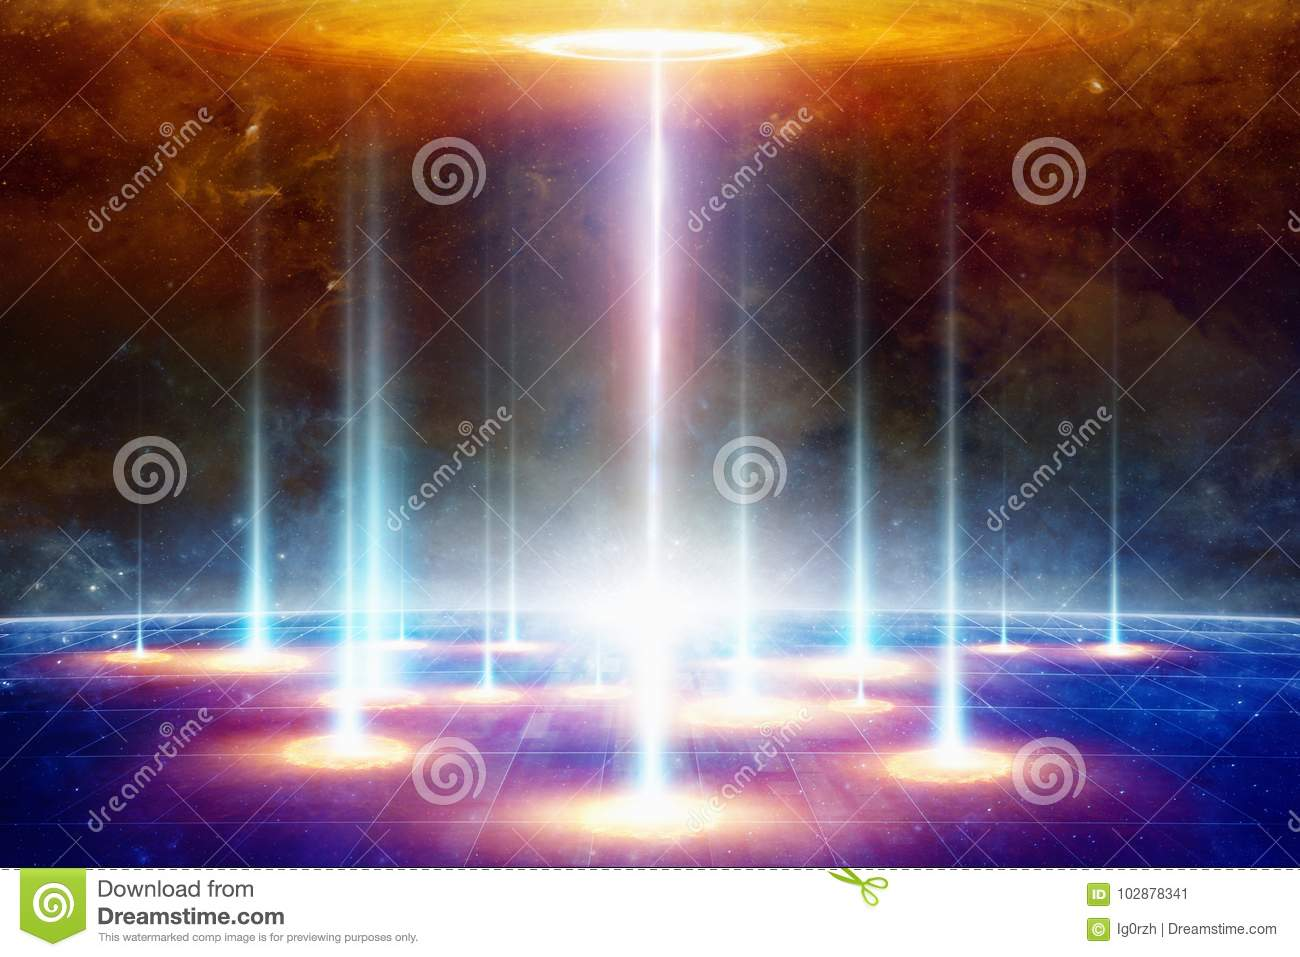 Teleportation to another world or dimension, secret scientific e